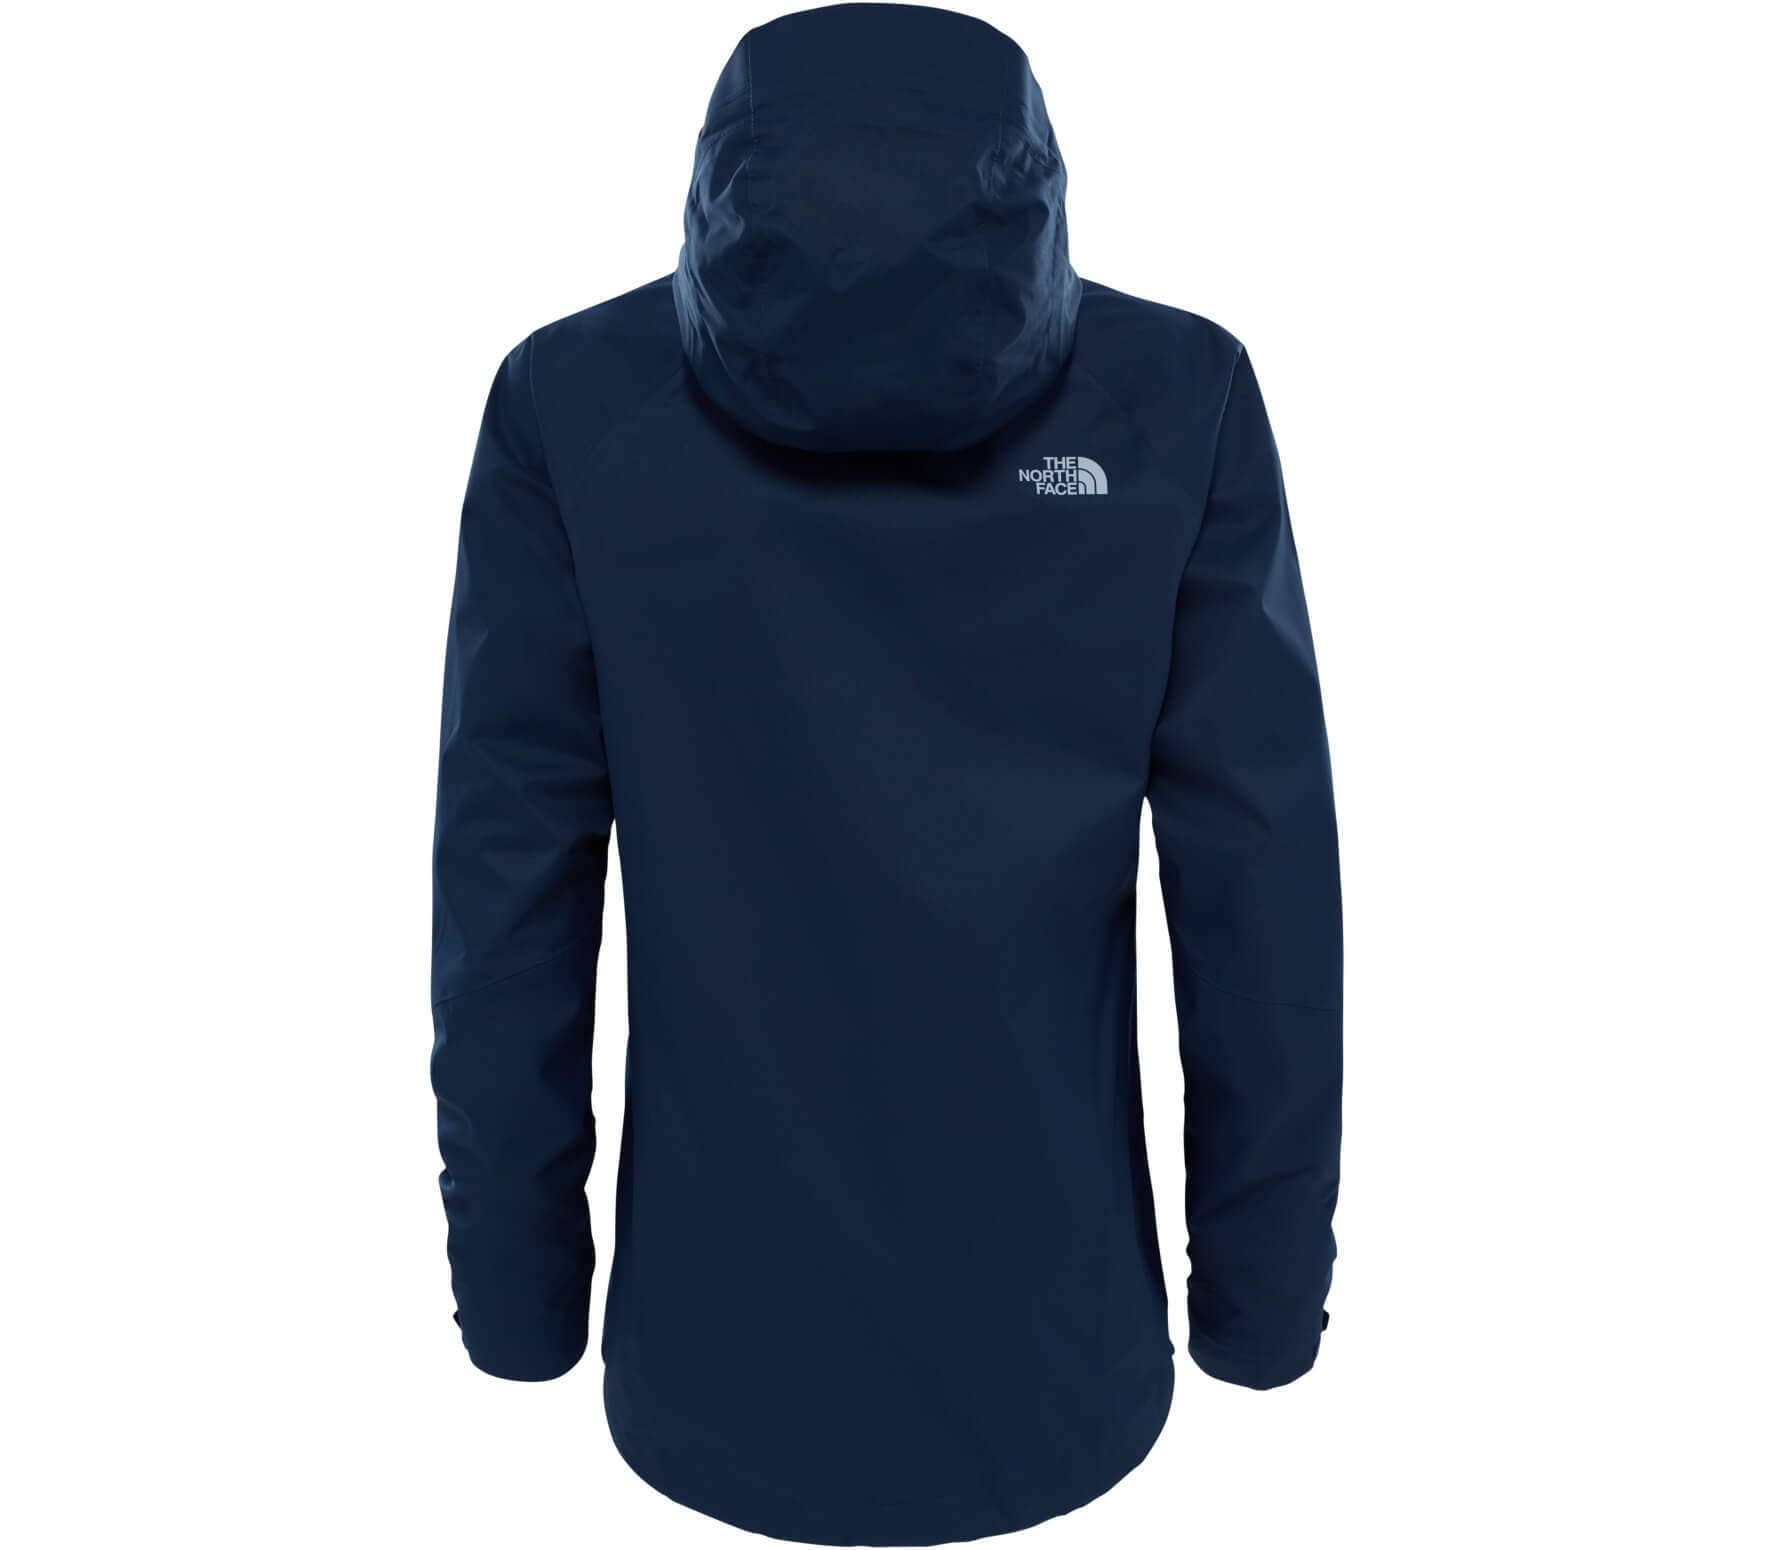 official photos 768ed 870c8 The North Face - Sequence women's raincoat (dark blue)